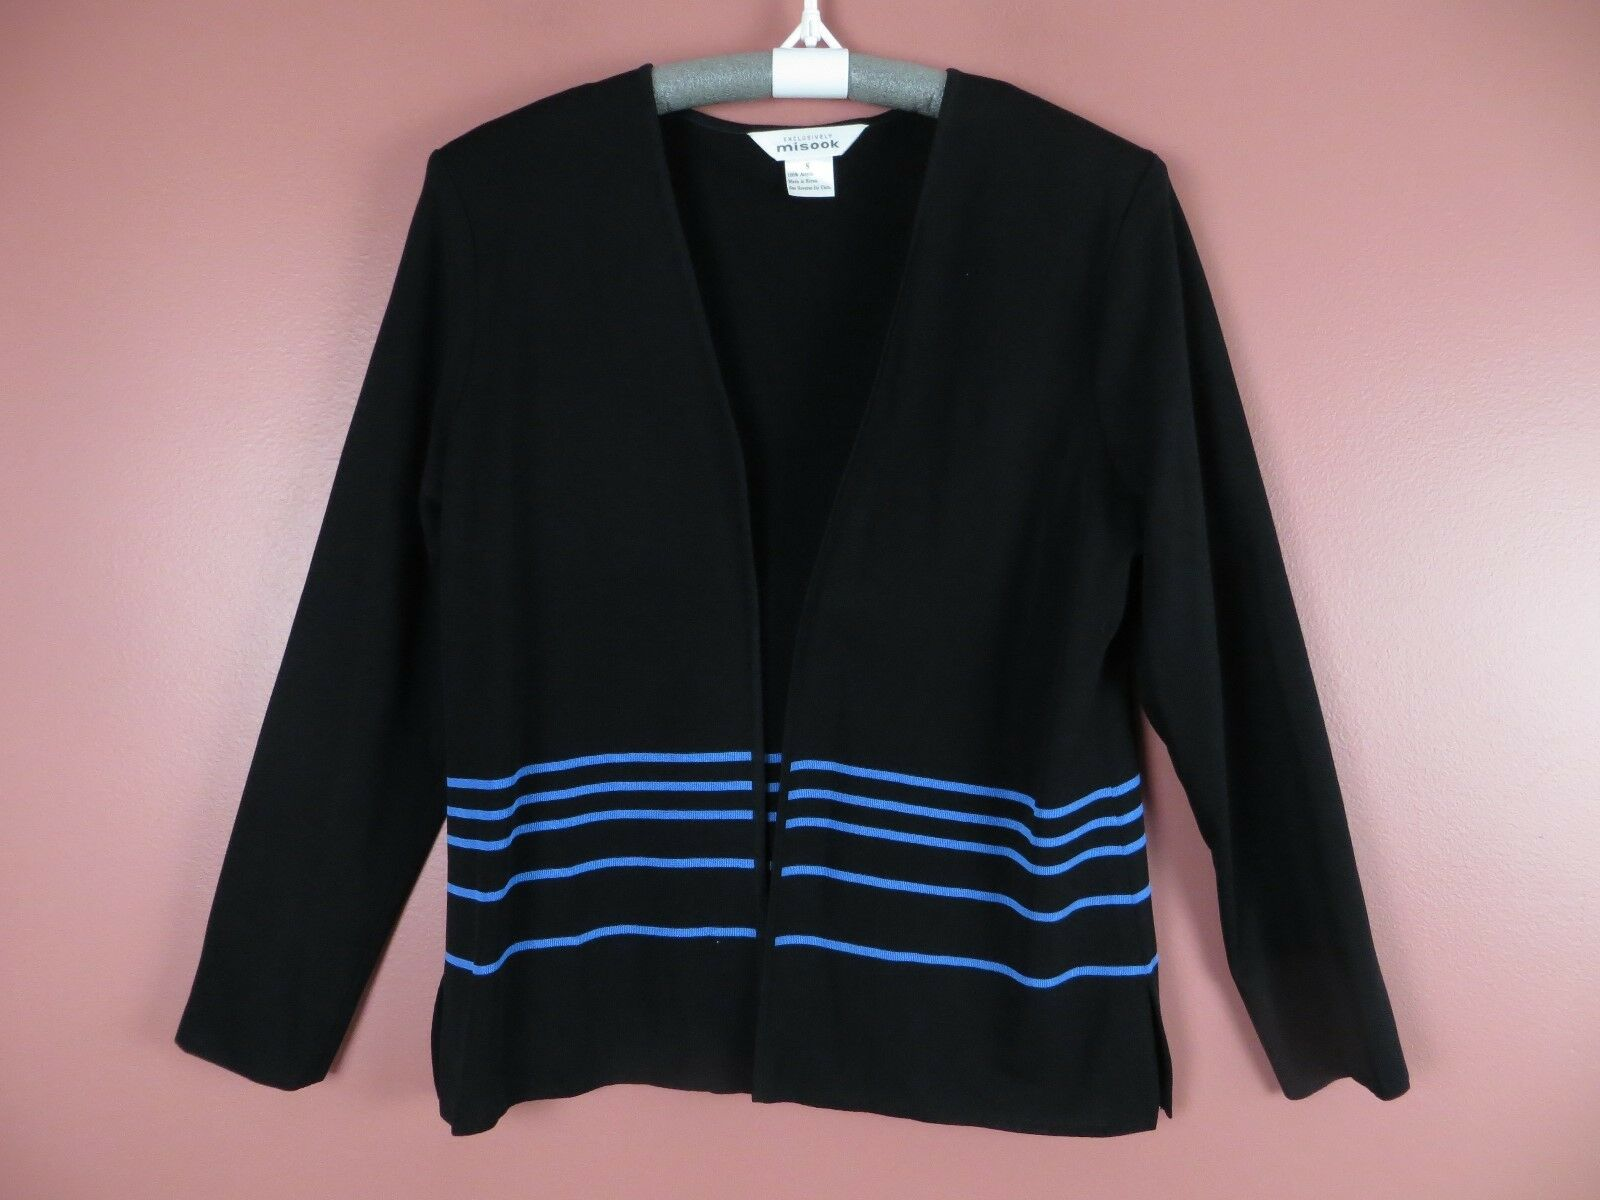 TB04409- EXCLUSIVELY MISOOK Woman Stretch Knit Open Front Cardigan schwarz Blau S